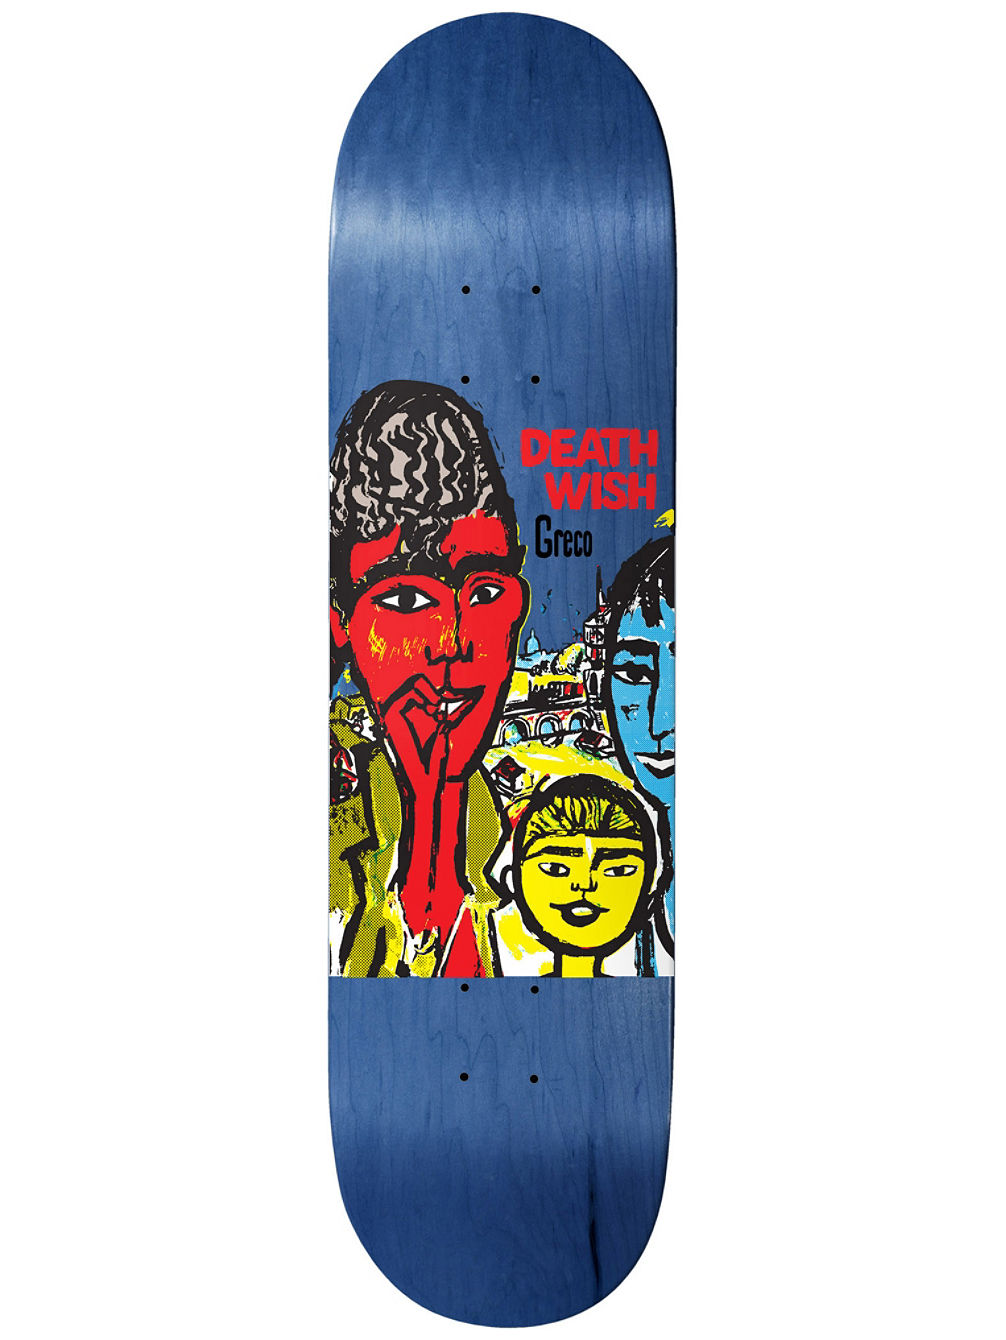 Greco Street Kids 8.475'' Skateboard Dec